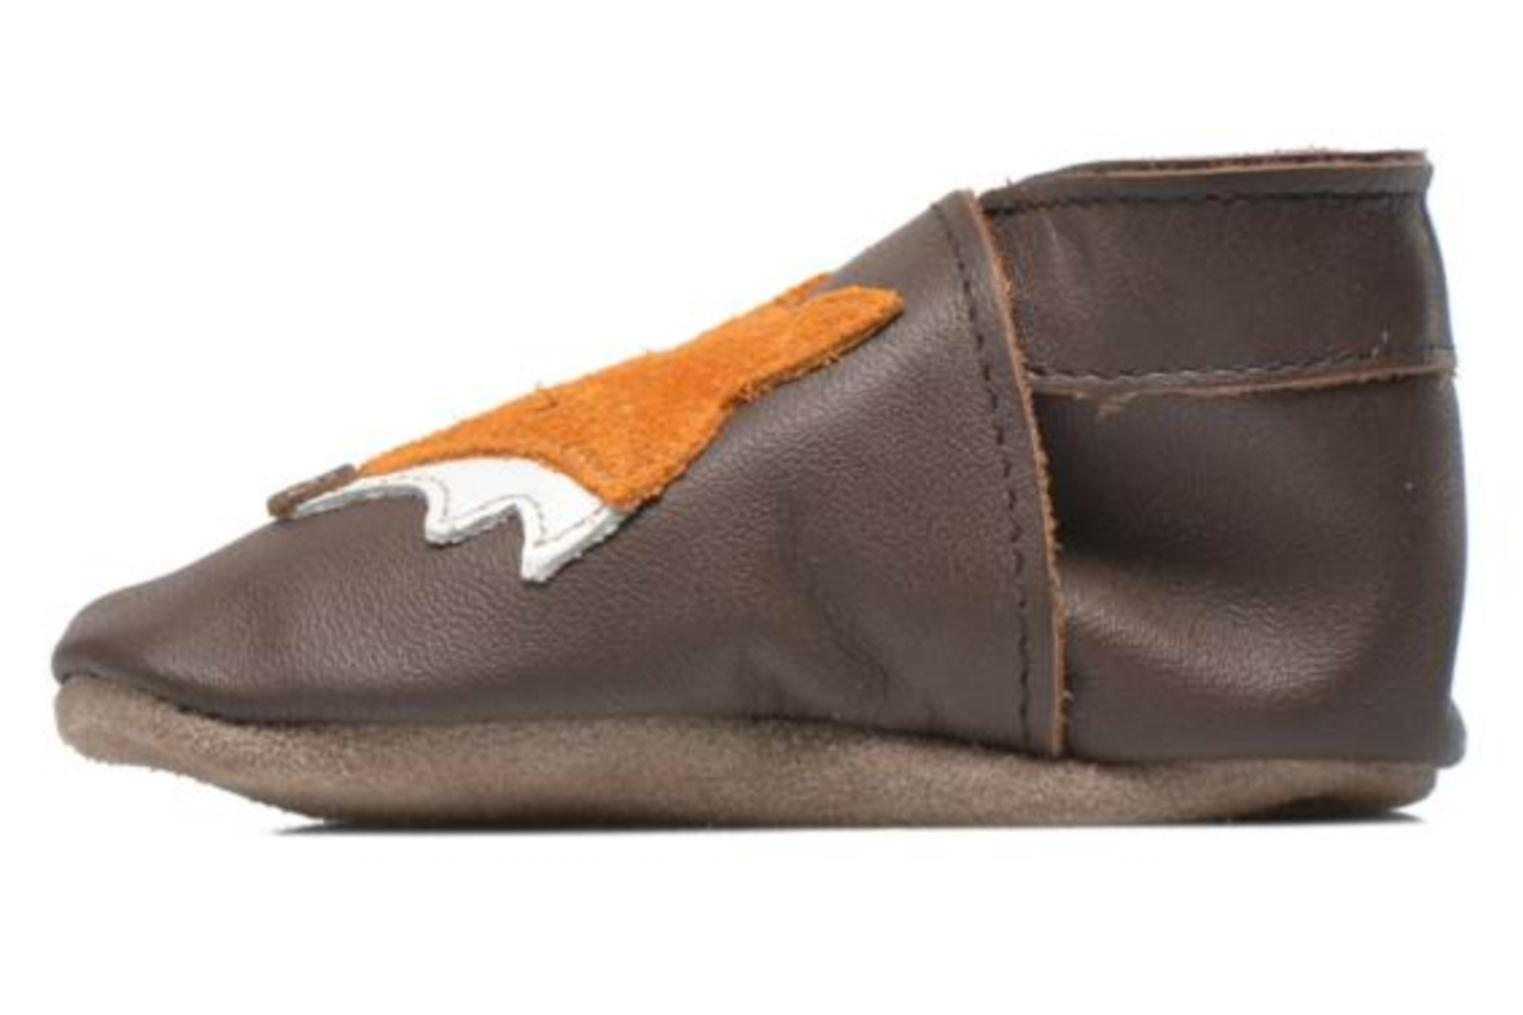 Chaussons Inch Blue Mr Fox Marron vue face